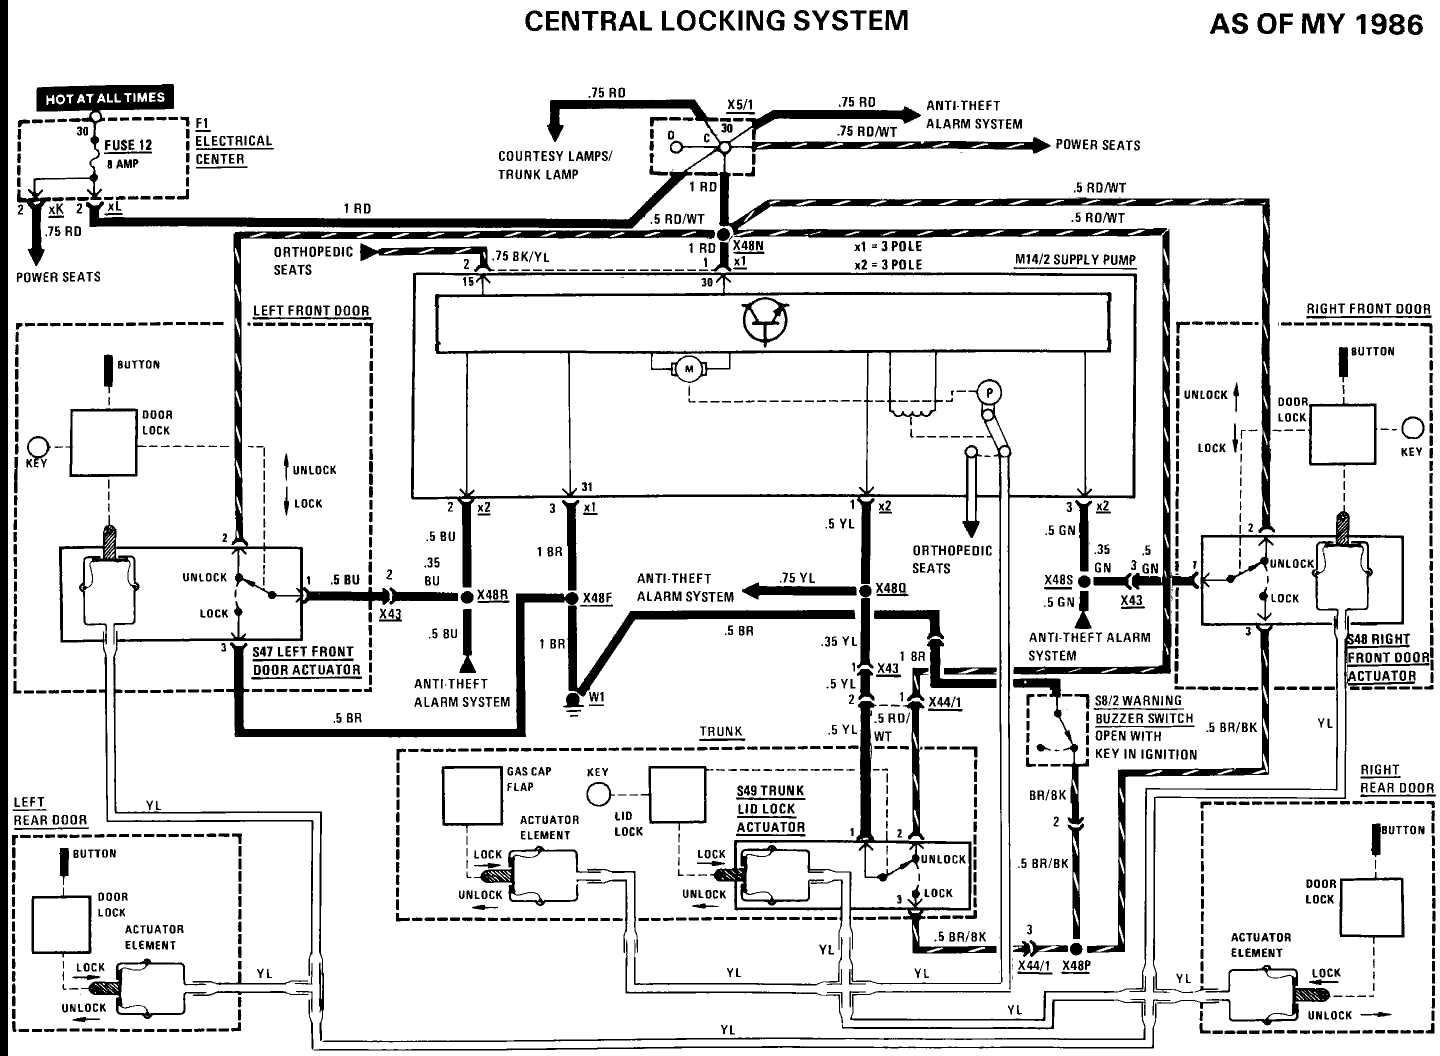 W201 Central Locking Wiring Diagram - Fiat Uno 1100 Wiring Diagram  s43-enginediagrams.au-delice-limousin.frBege Place Wiring Diagram